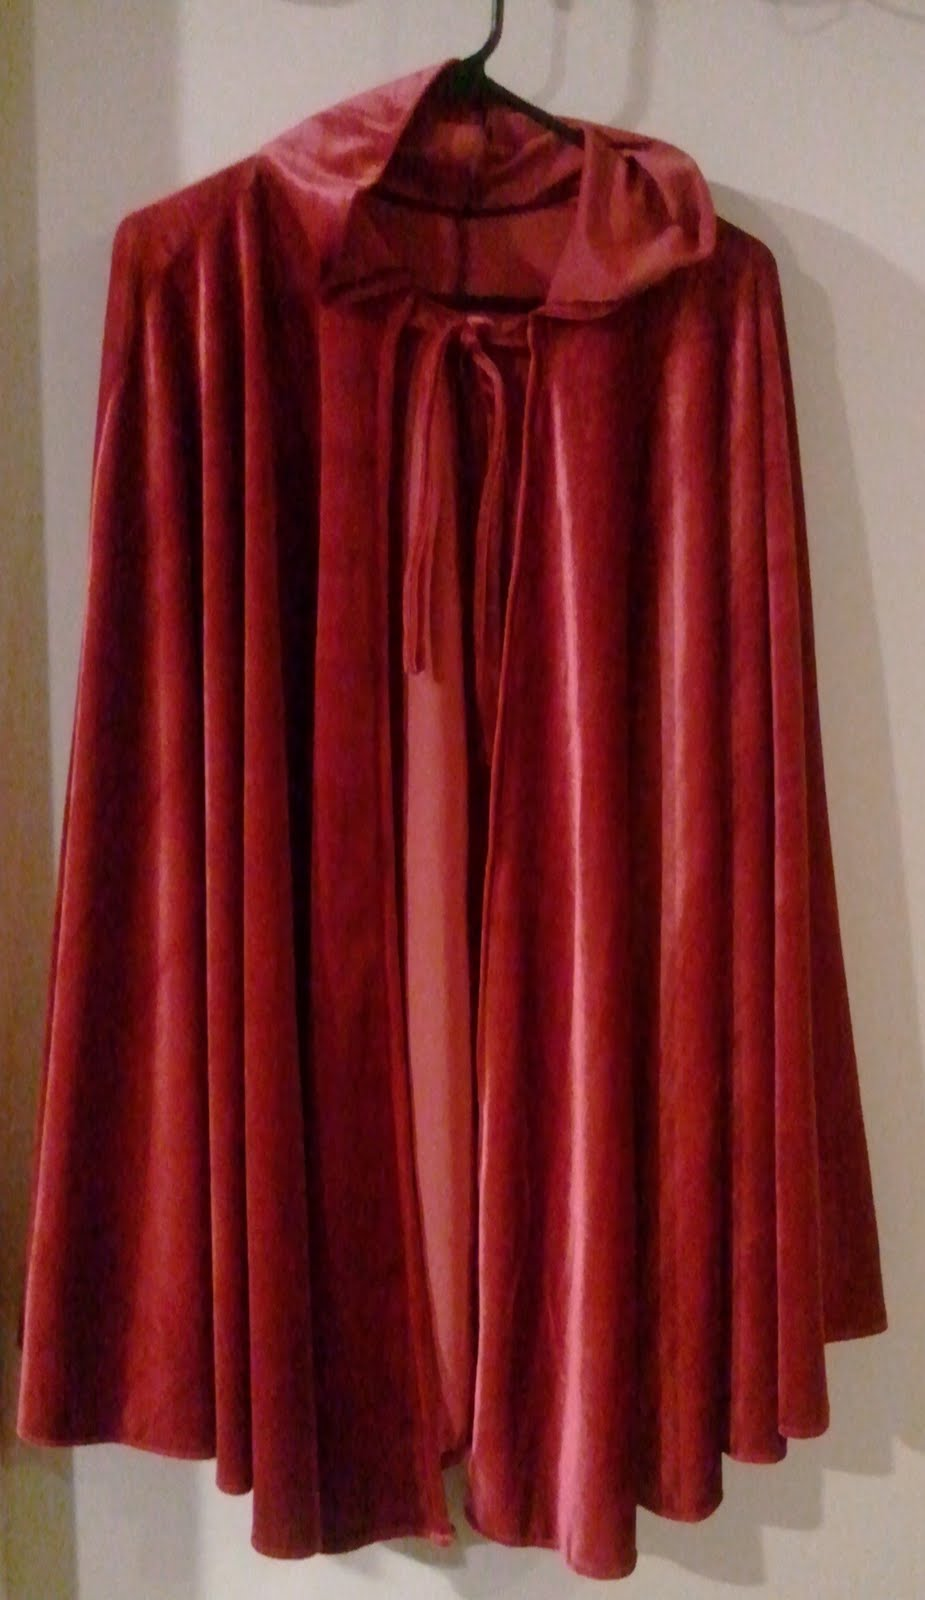 Christopher Reeve's Superman Cape